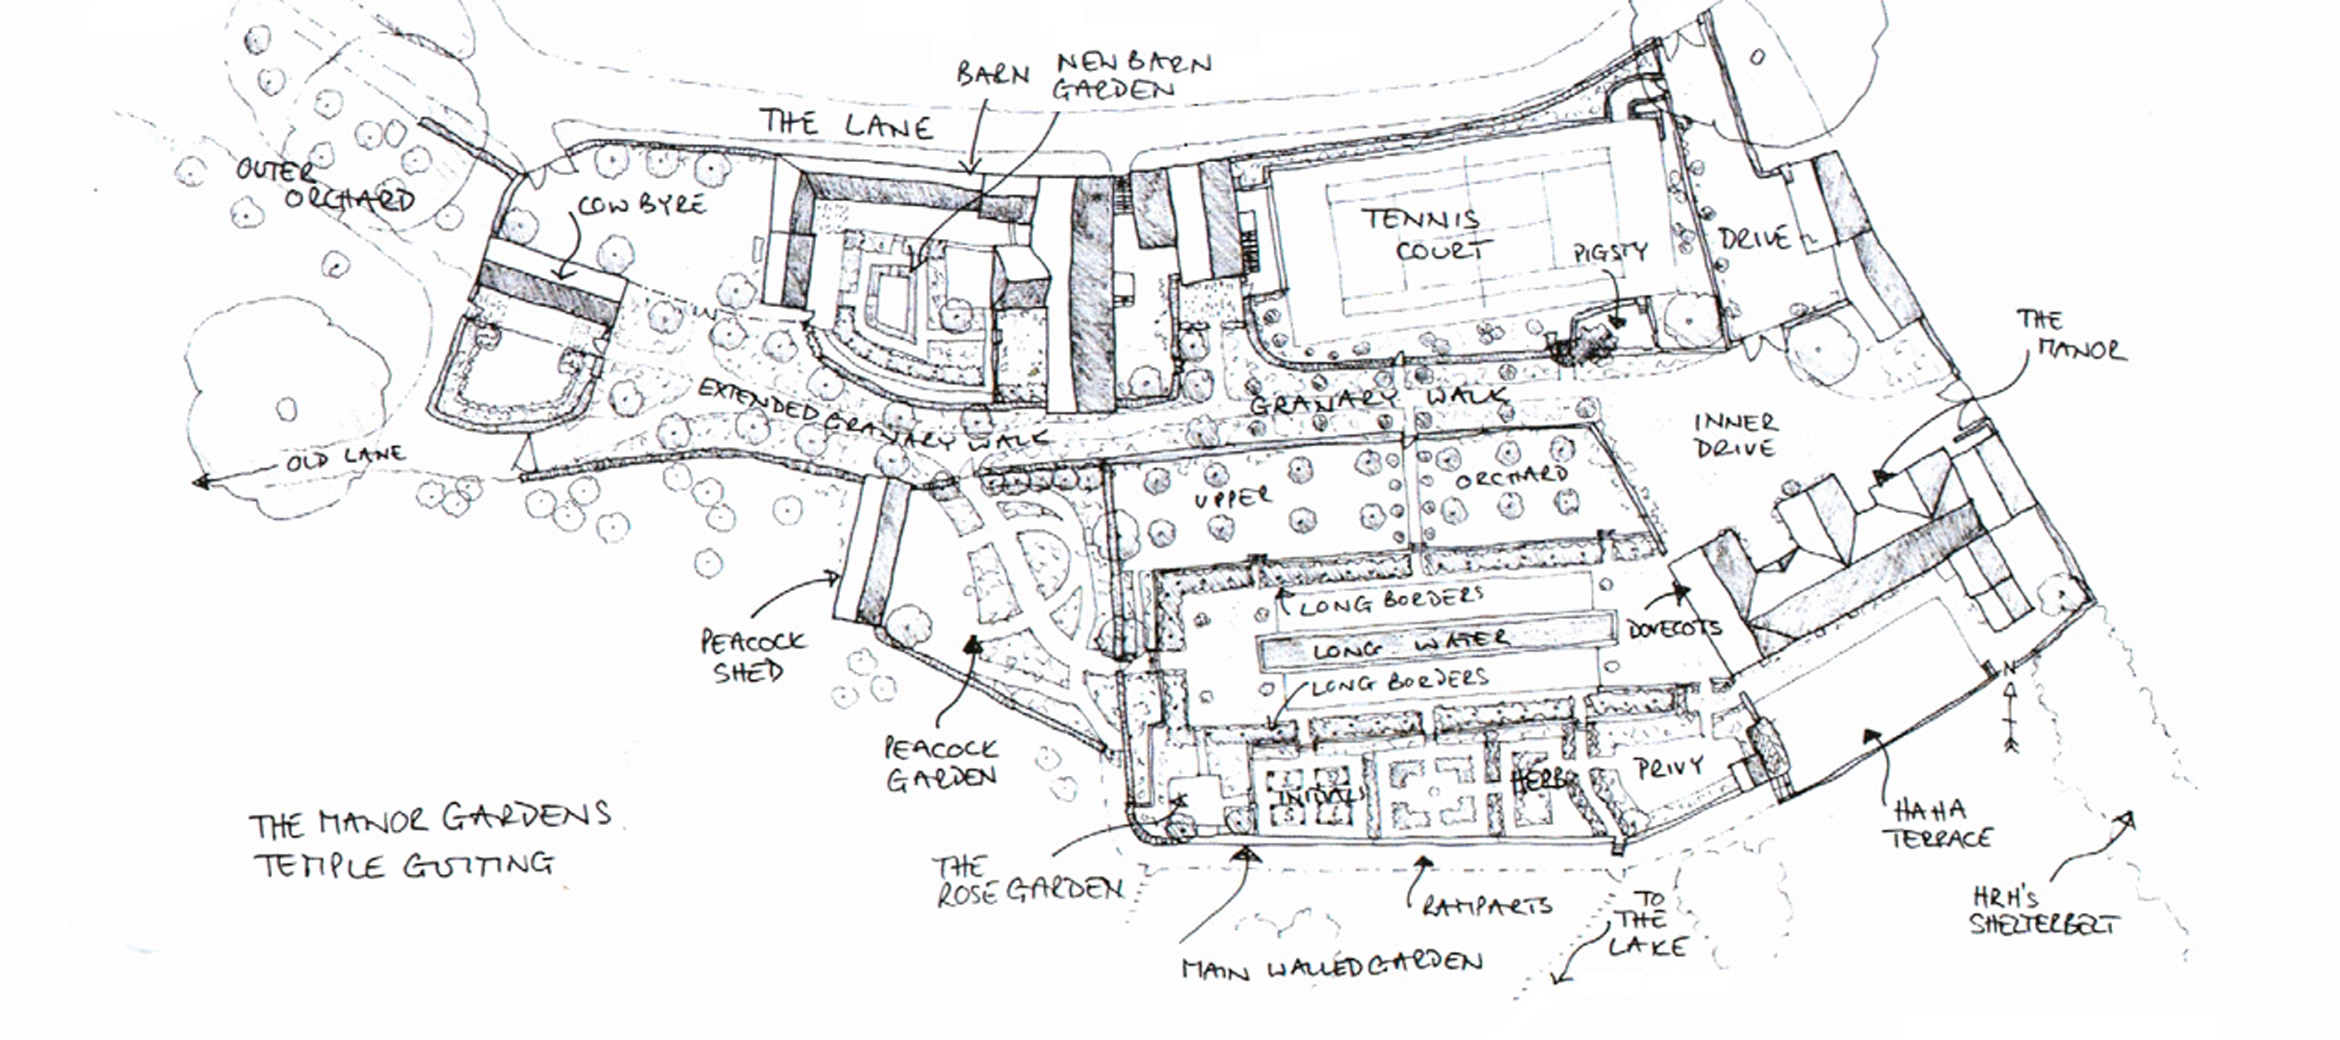 Temple-Guiting-Estate-Map